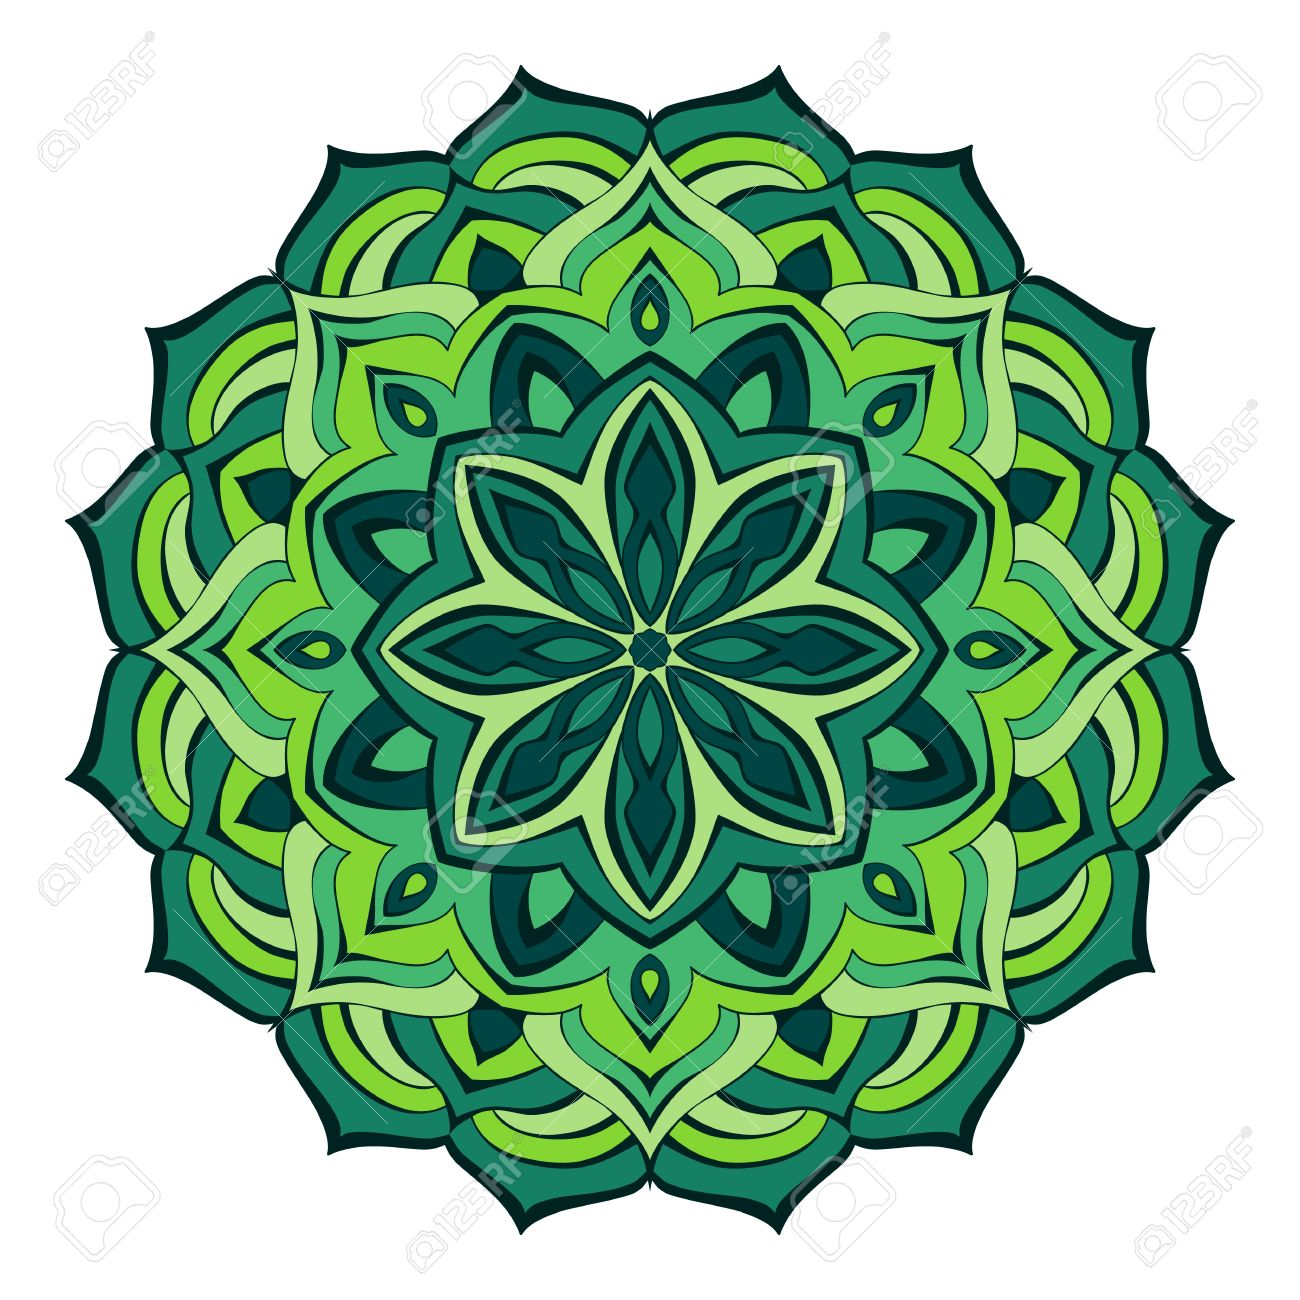 Fancy Mandala Of Flowing Lines In Green Emerald Colors Royalty Free